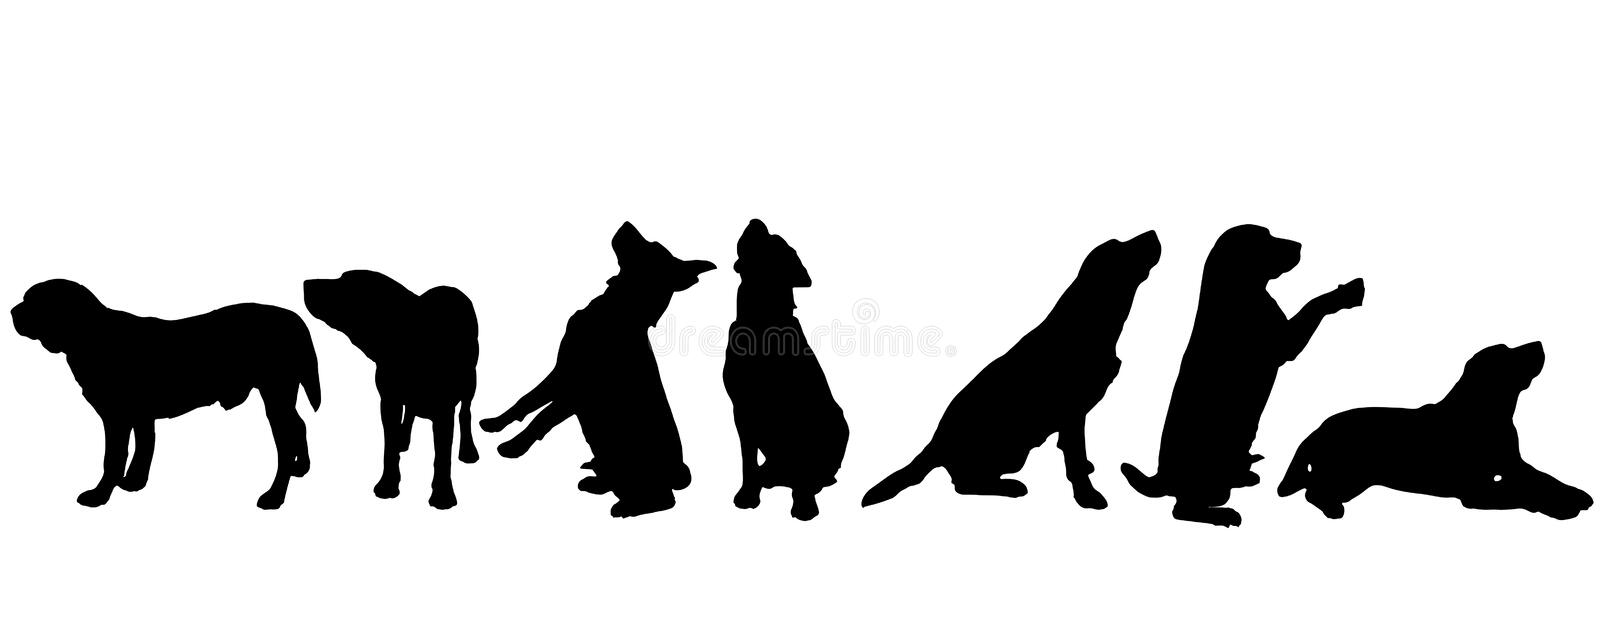 Vector silhouette of a dog. royalty free illustration